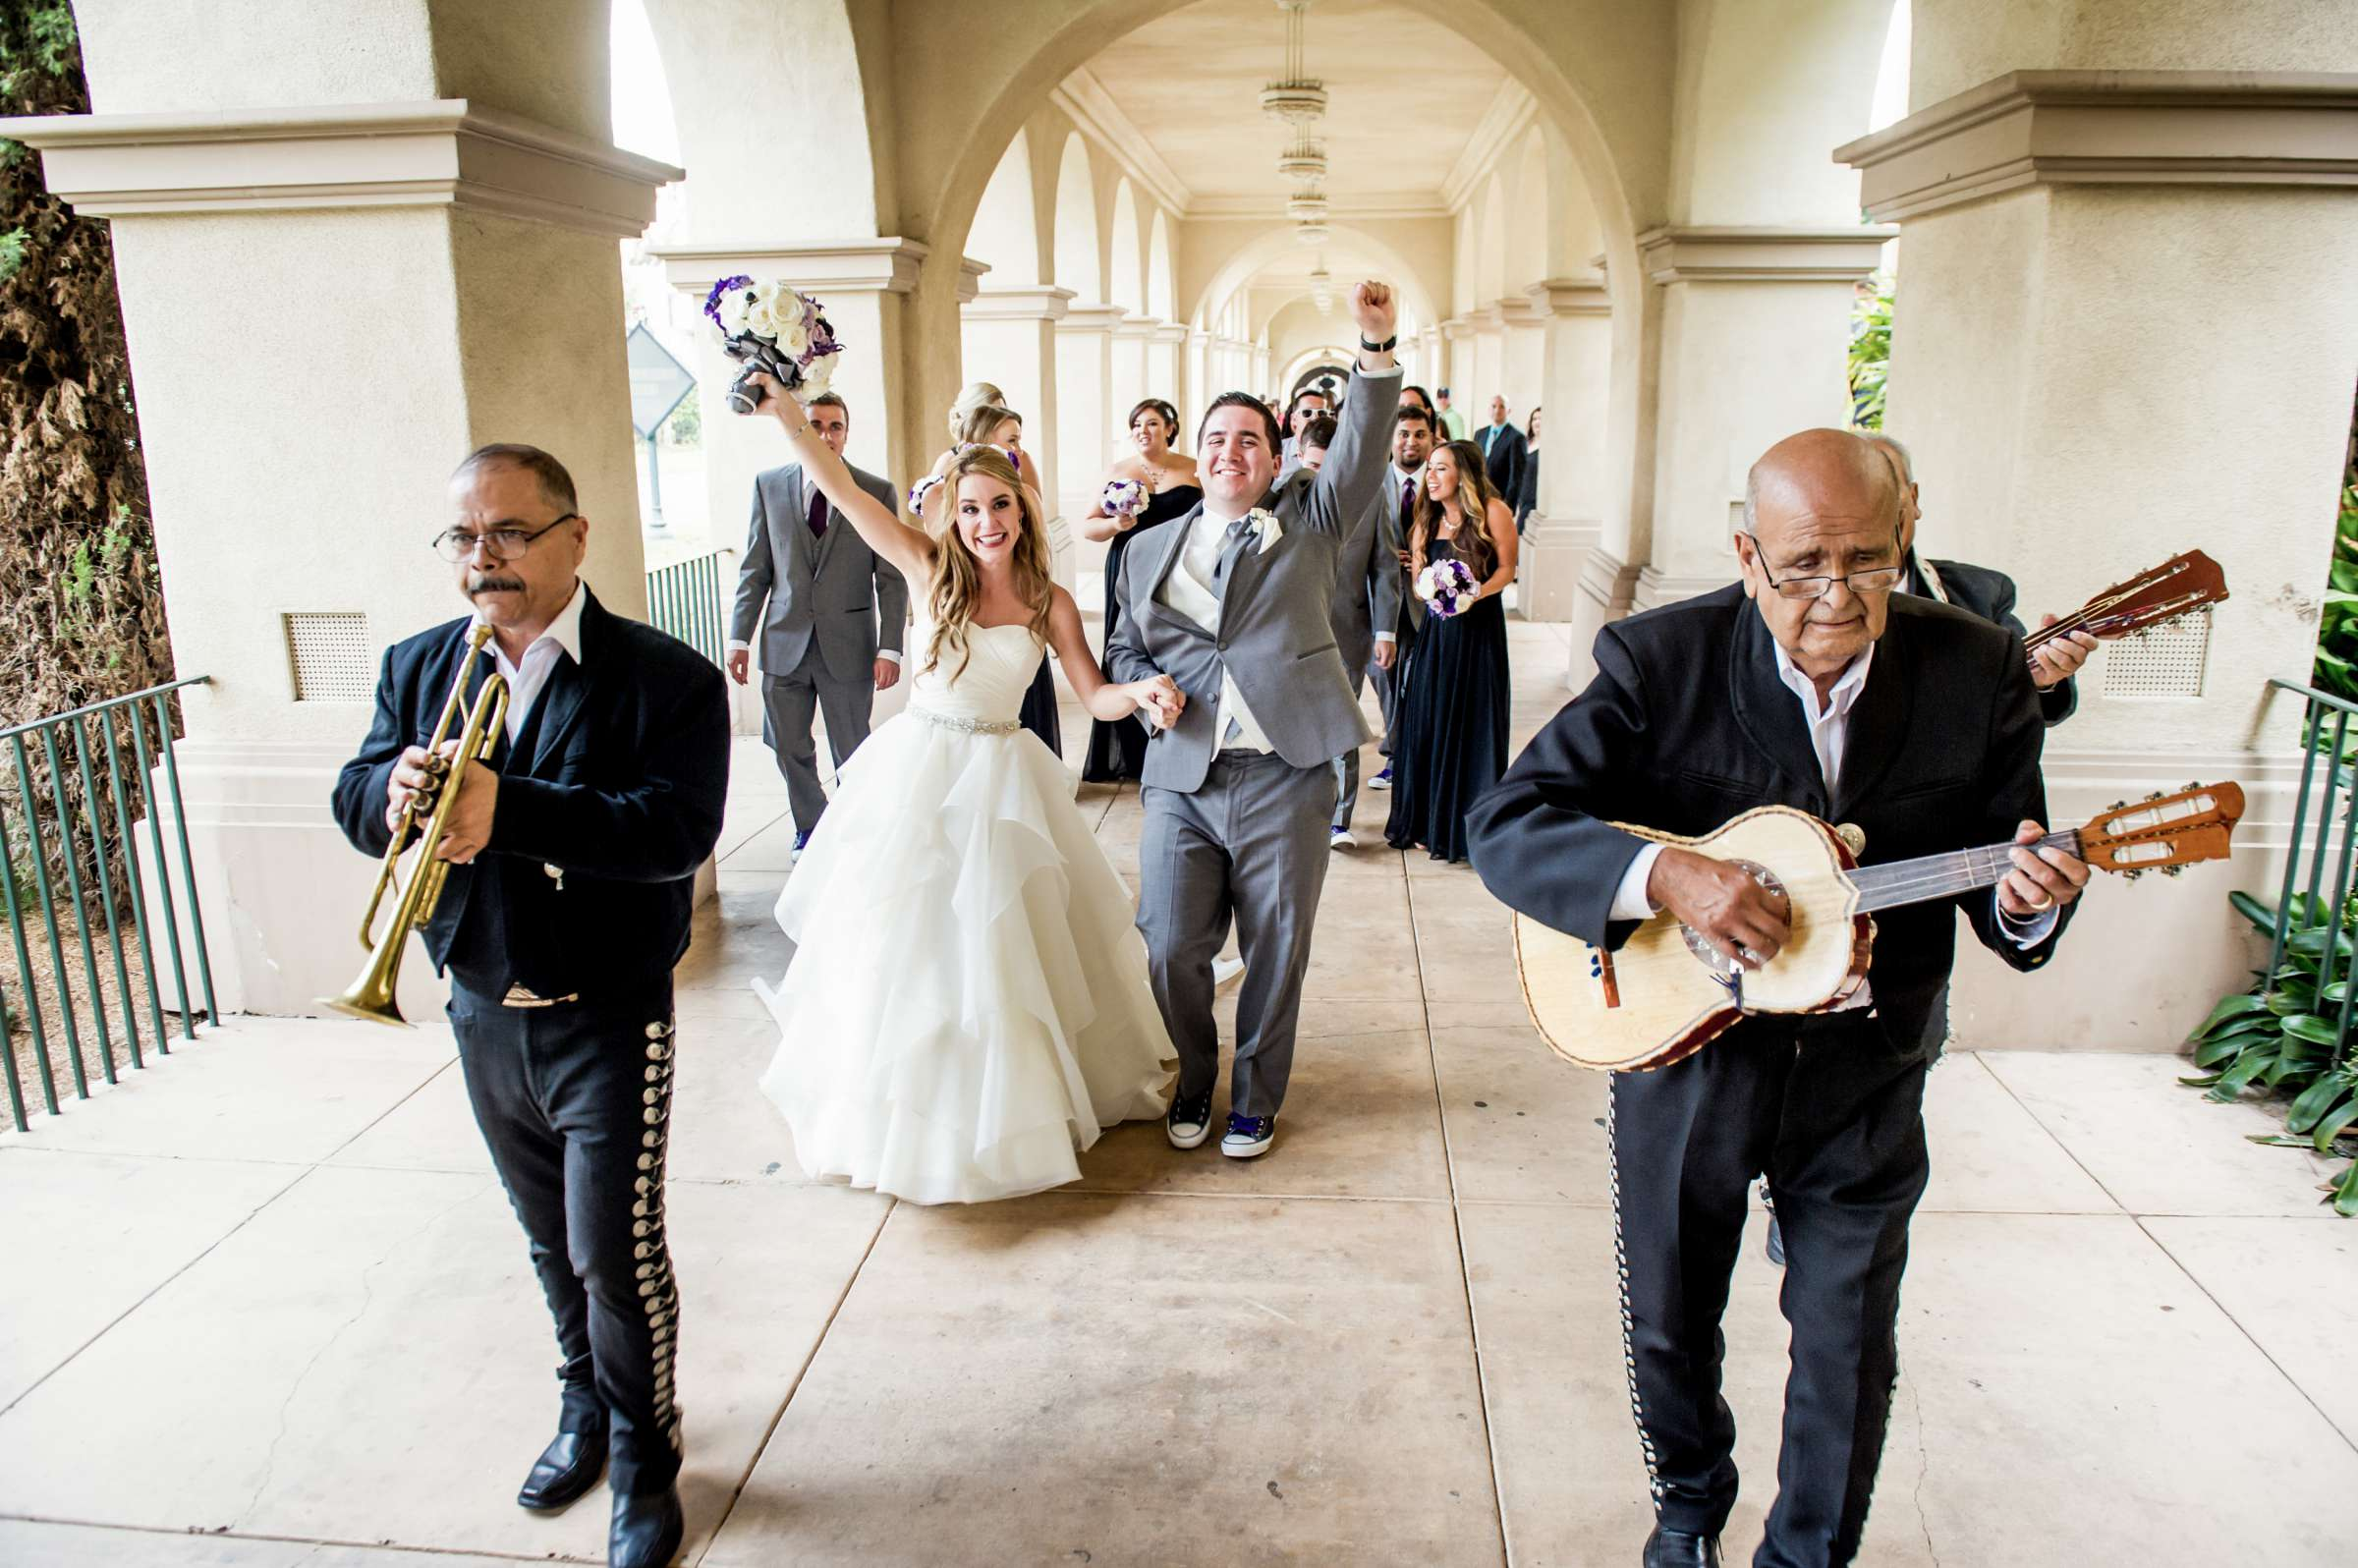 The Prado Wedding coordinated by Victoria Weddings & Events, Melissa and Andrew Wedding Photo #75 by True Photography